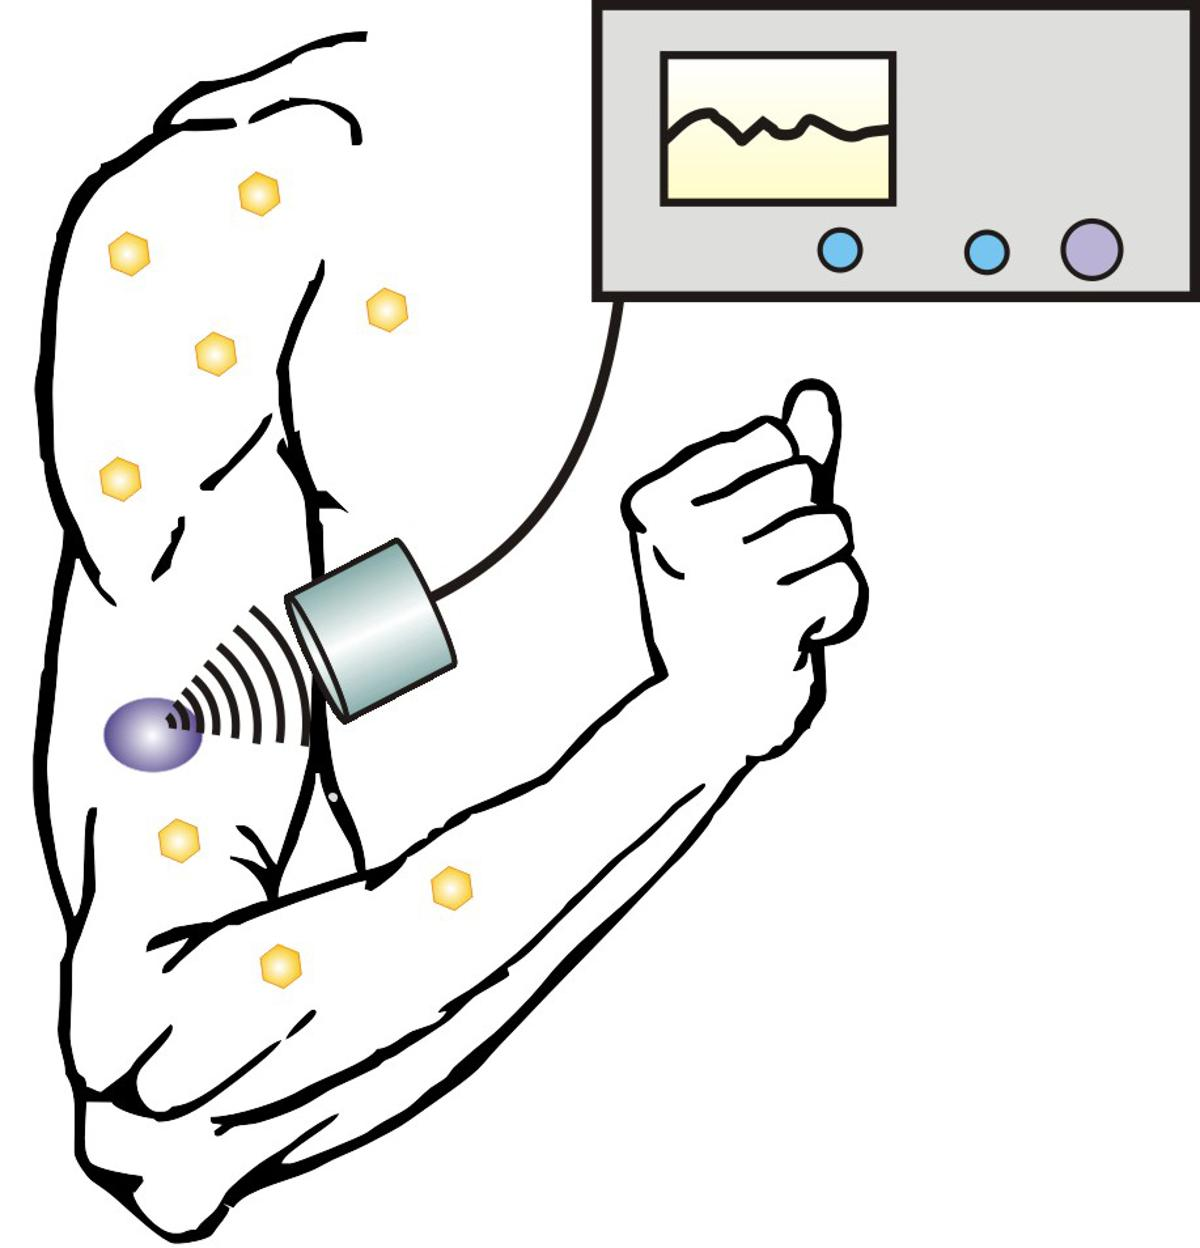 Focused waves of ultrasound have been used to release insulin from reservoirs in the skin